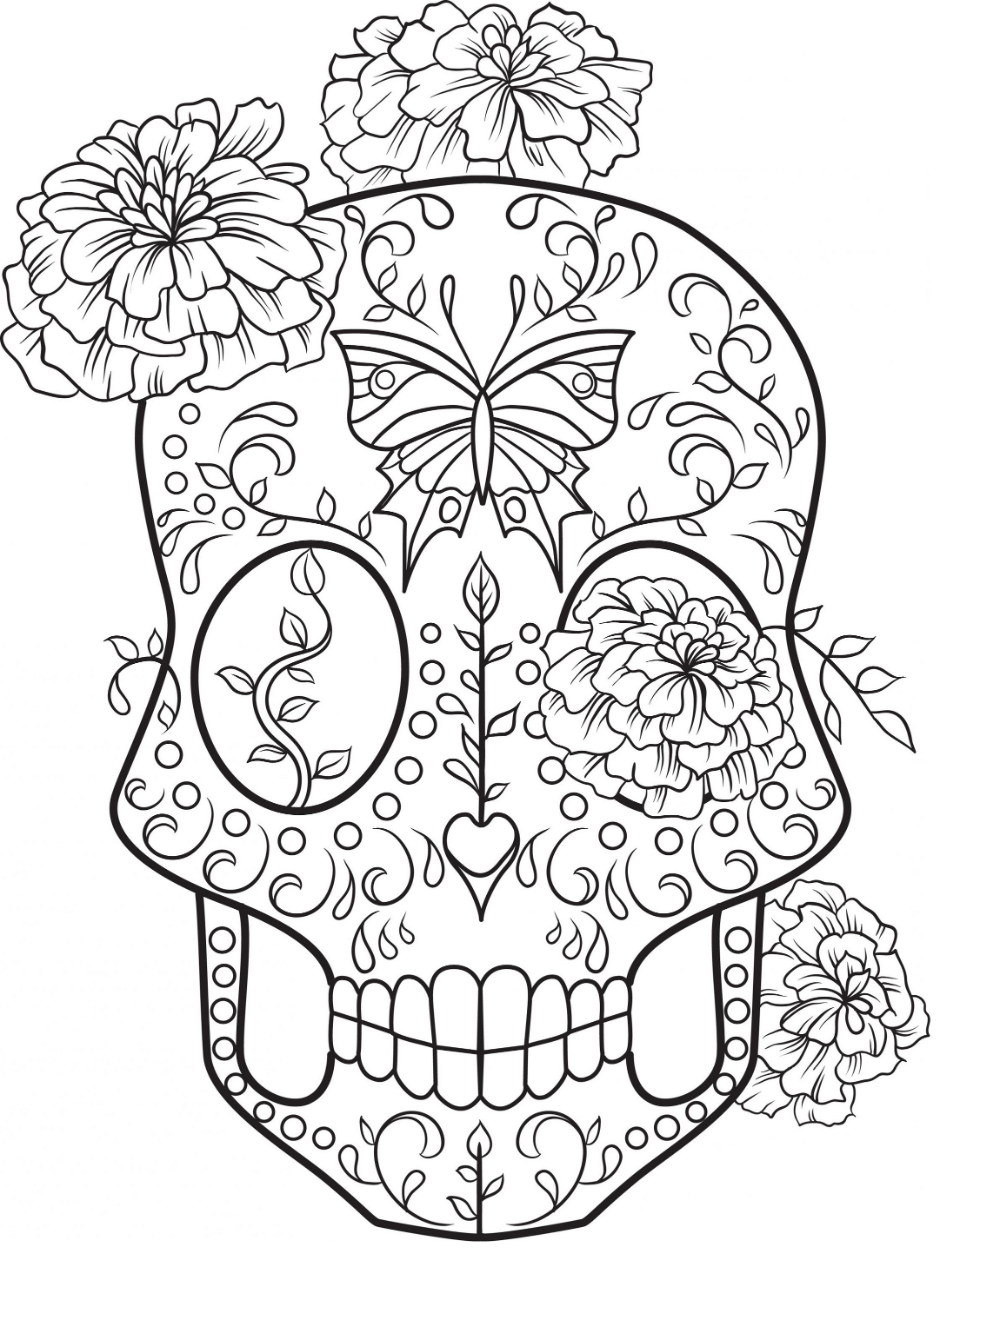 Easy Sugar Skull Coloring | Skull coloring pages, Coloring ...